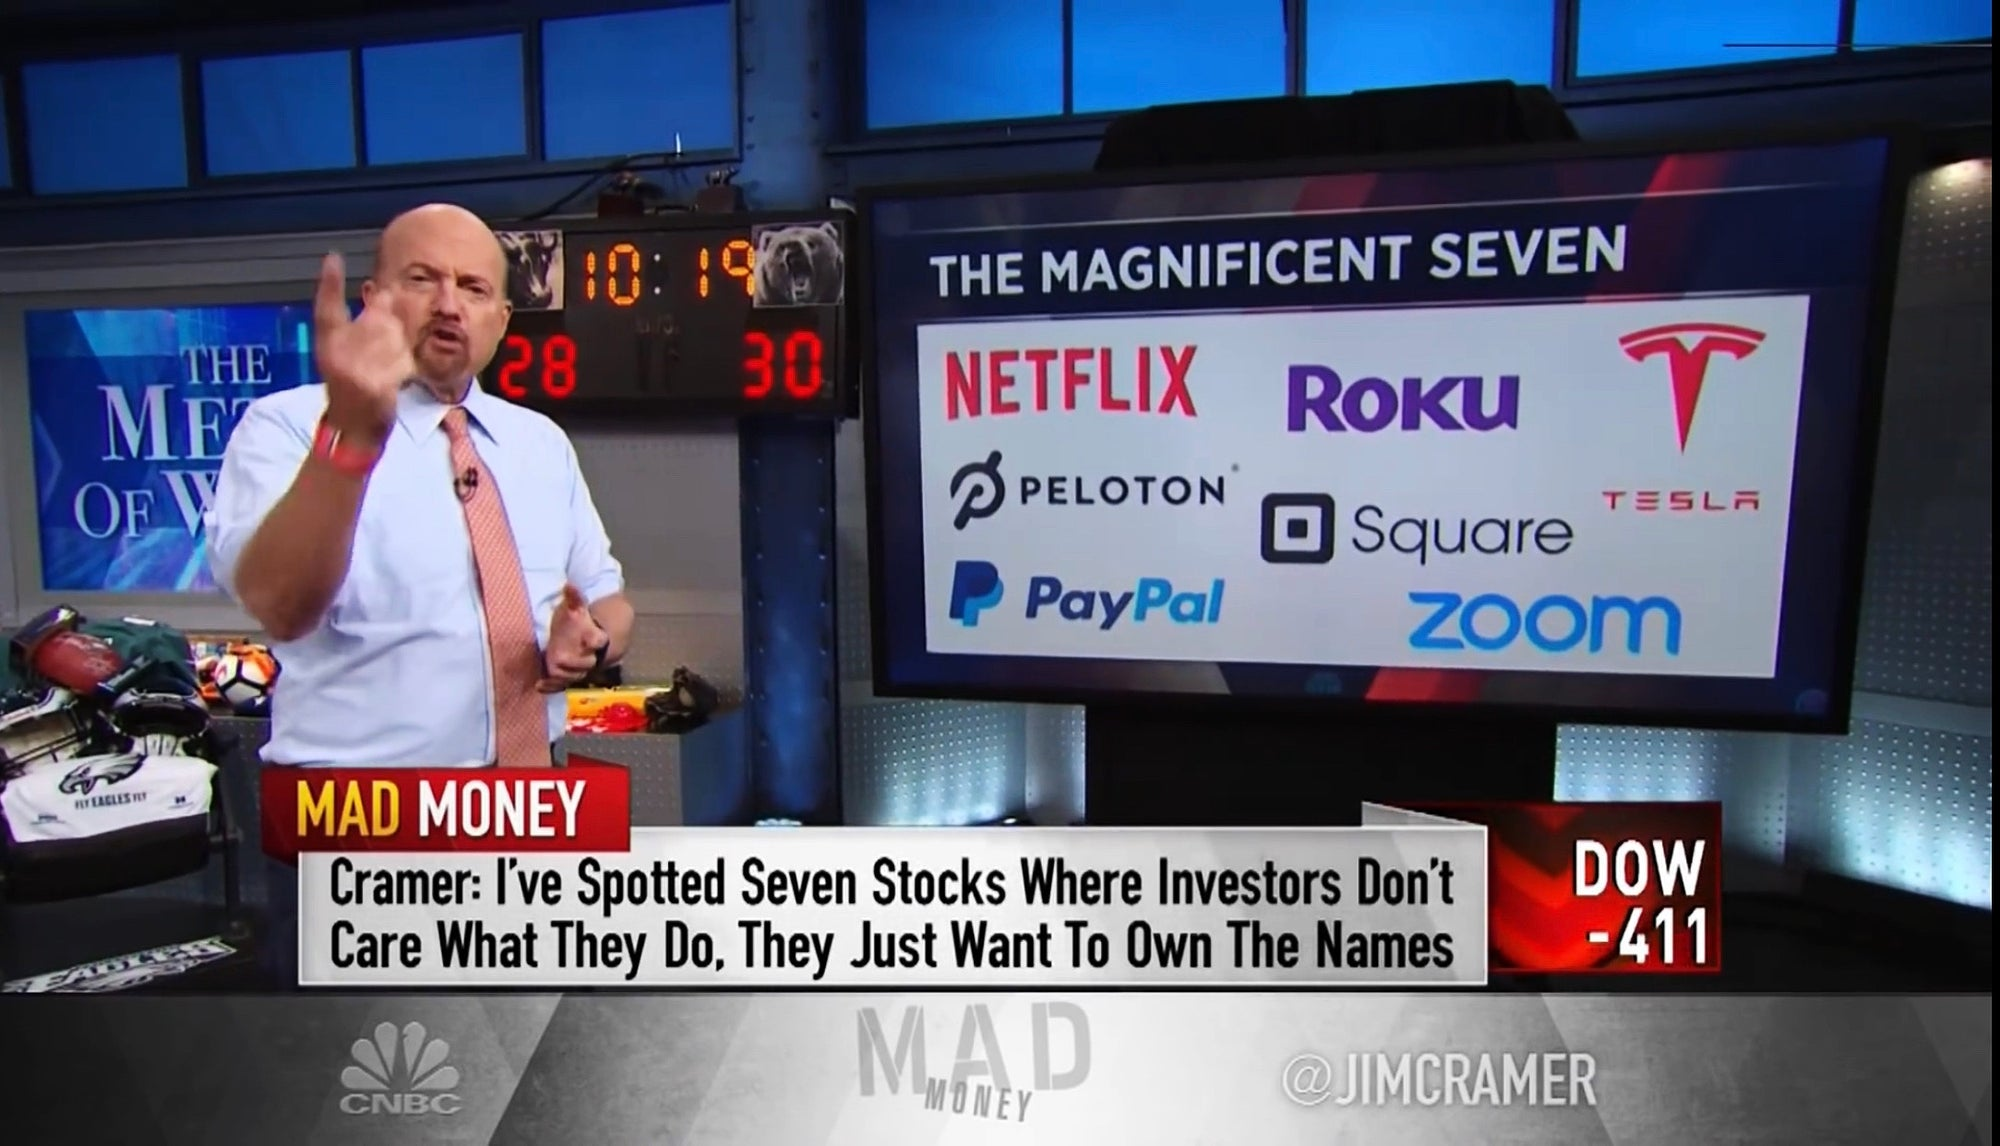 Tesla Inc TSLA Included In Jim Cramer's New 'Magnificent 7' After His Famous 'FANG'